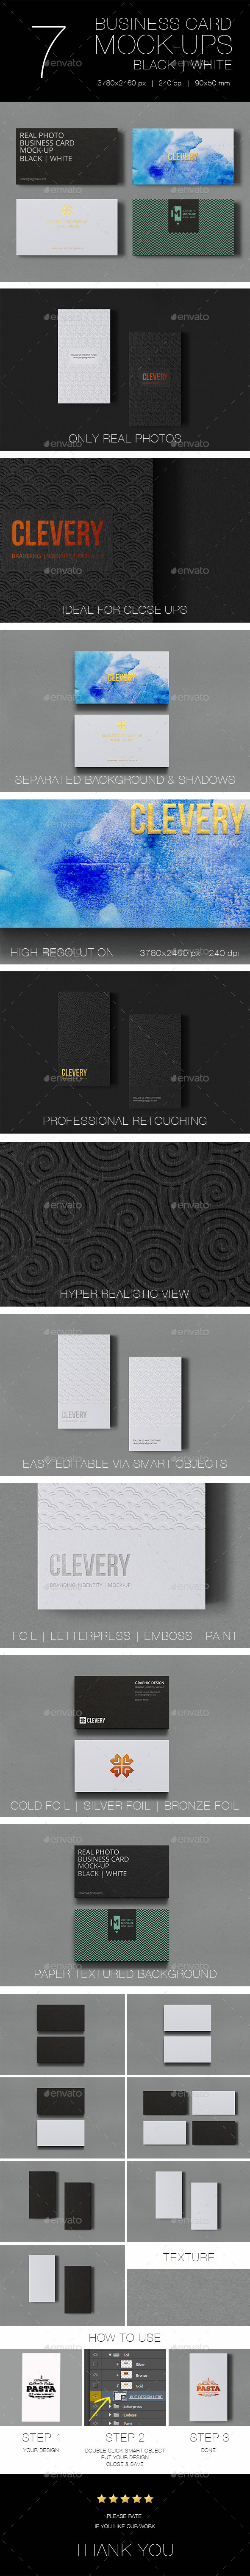 GraphicRiver Photorealistic Business Card Mockup Black & White 10962076